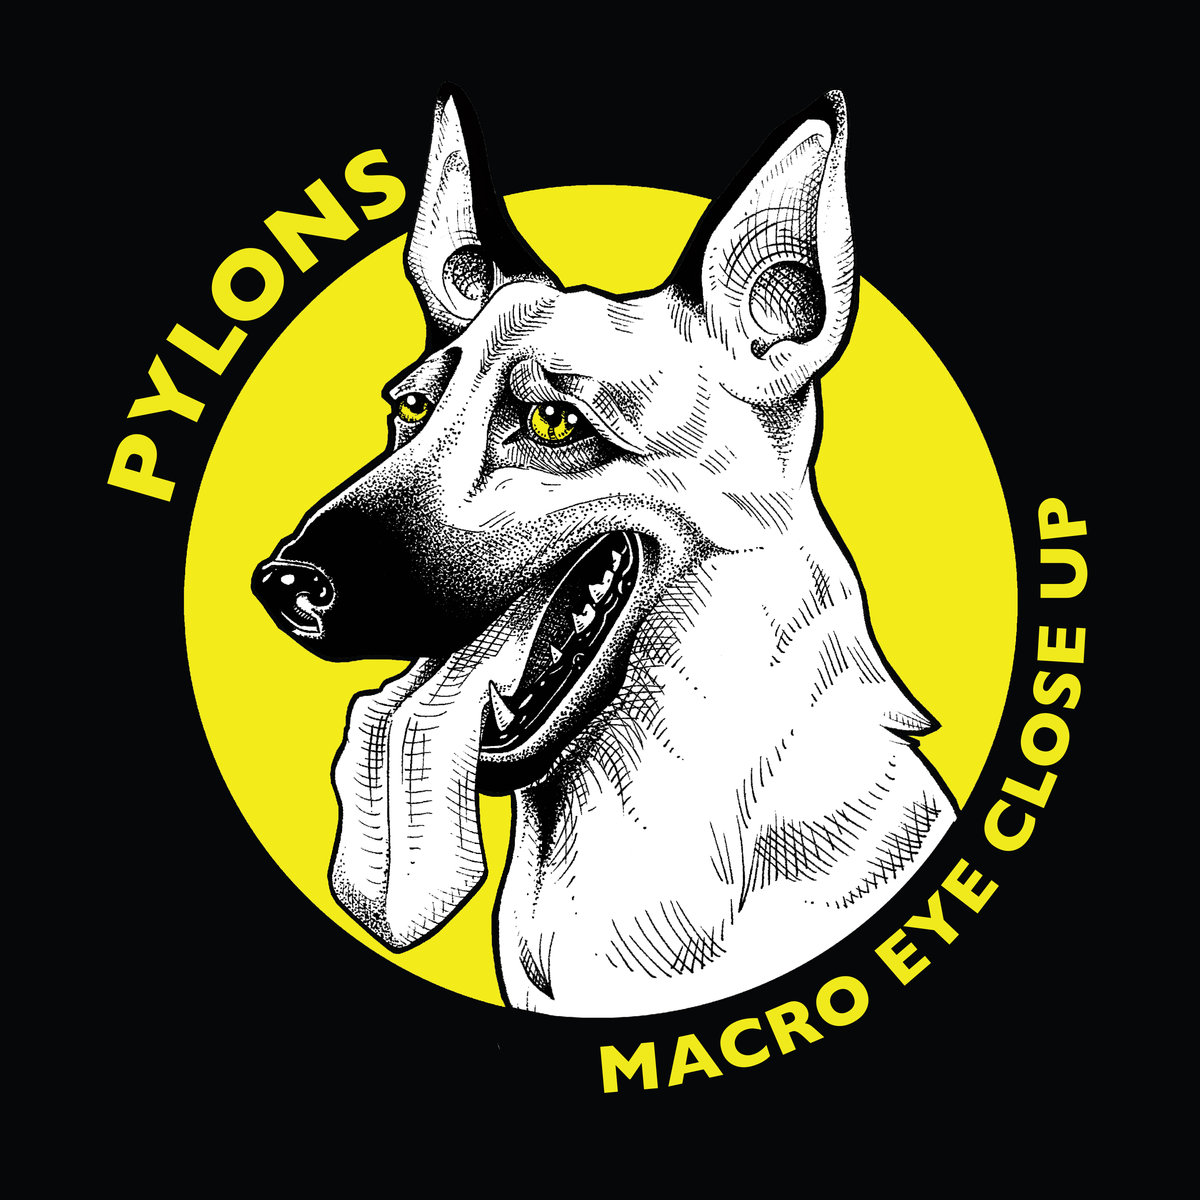 Pylons - Macro Eye Close Up March 2ndThe Chicago punk quartet impressed us with this sophomore effort. (They were our first interview, way back in March.) A quick eight tunes of constant rock joy, Sam Fadness' scowling snarl balanced with Gretchen Hannum's killer scream makes for one of our favorite punk albums and signaled the start of a great year for the young band. Give Macro Eye Close Up a listen and you'll understand. Then catch em live on January 4th at Livewire Lounge for a $5 cover, or at The Empty Bottle opening for Slushy on January 10th. Tix are $8.-KPL